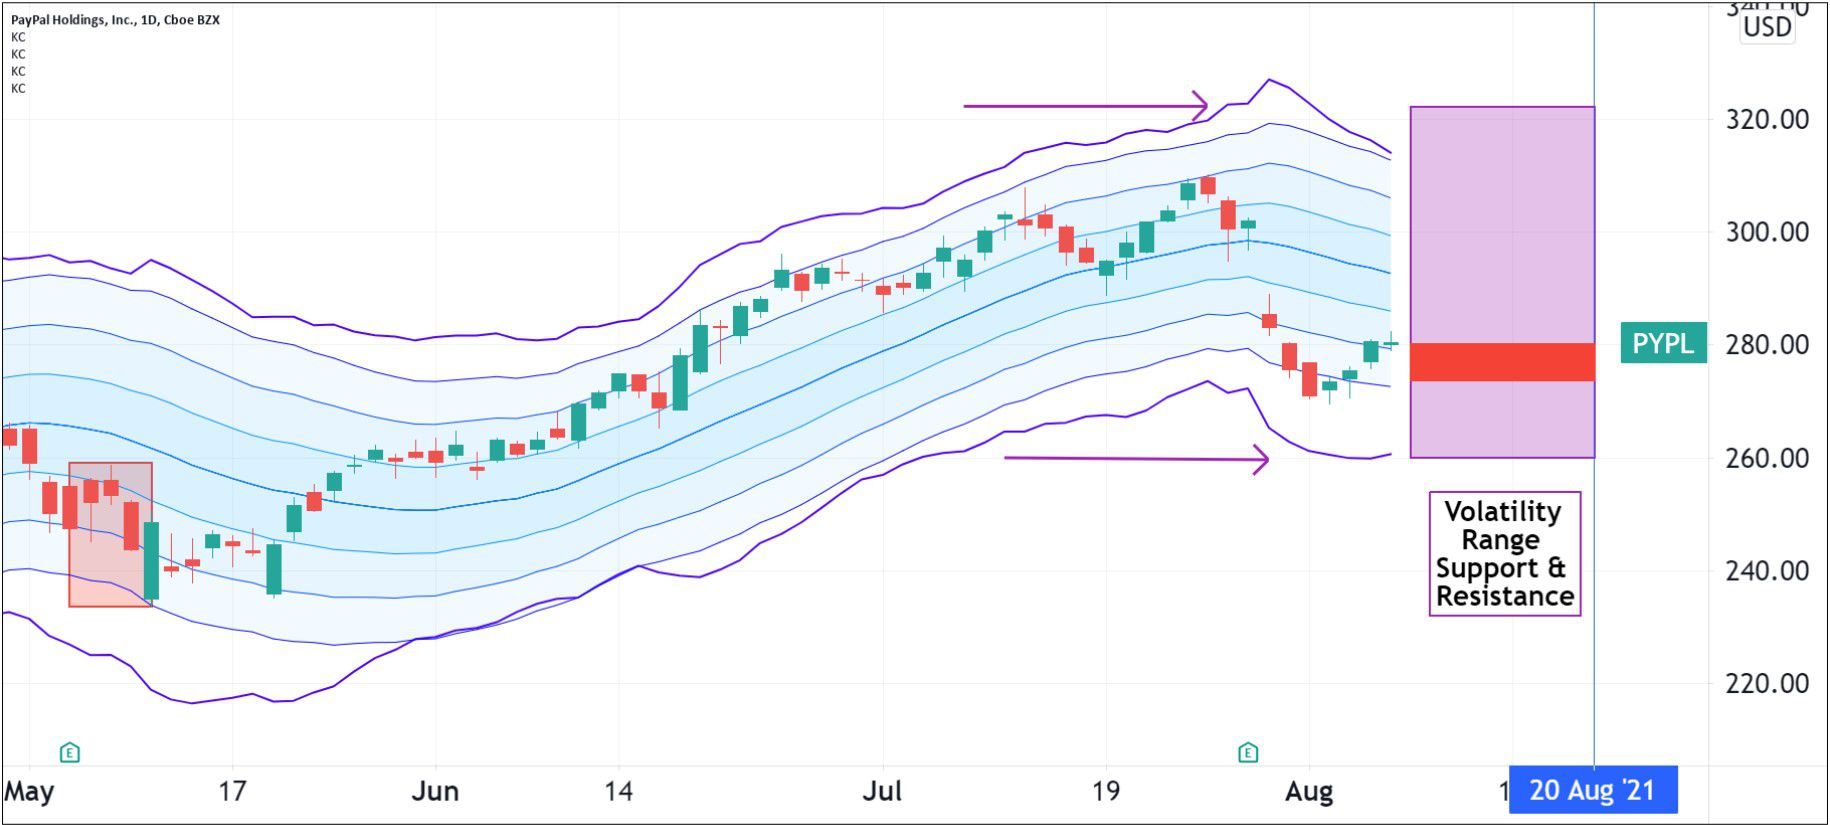 Volatility pattern for PayPal Holdings, Inc. (PYPL)